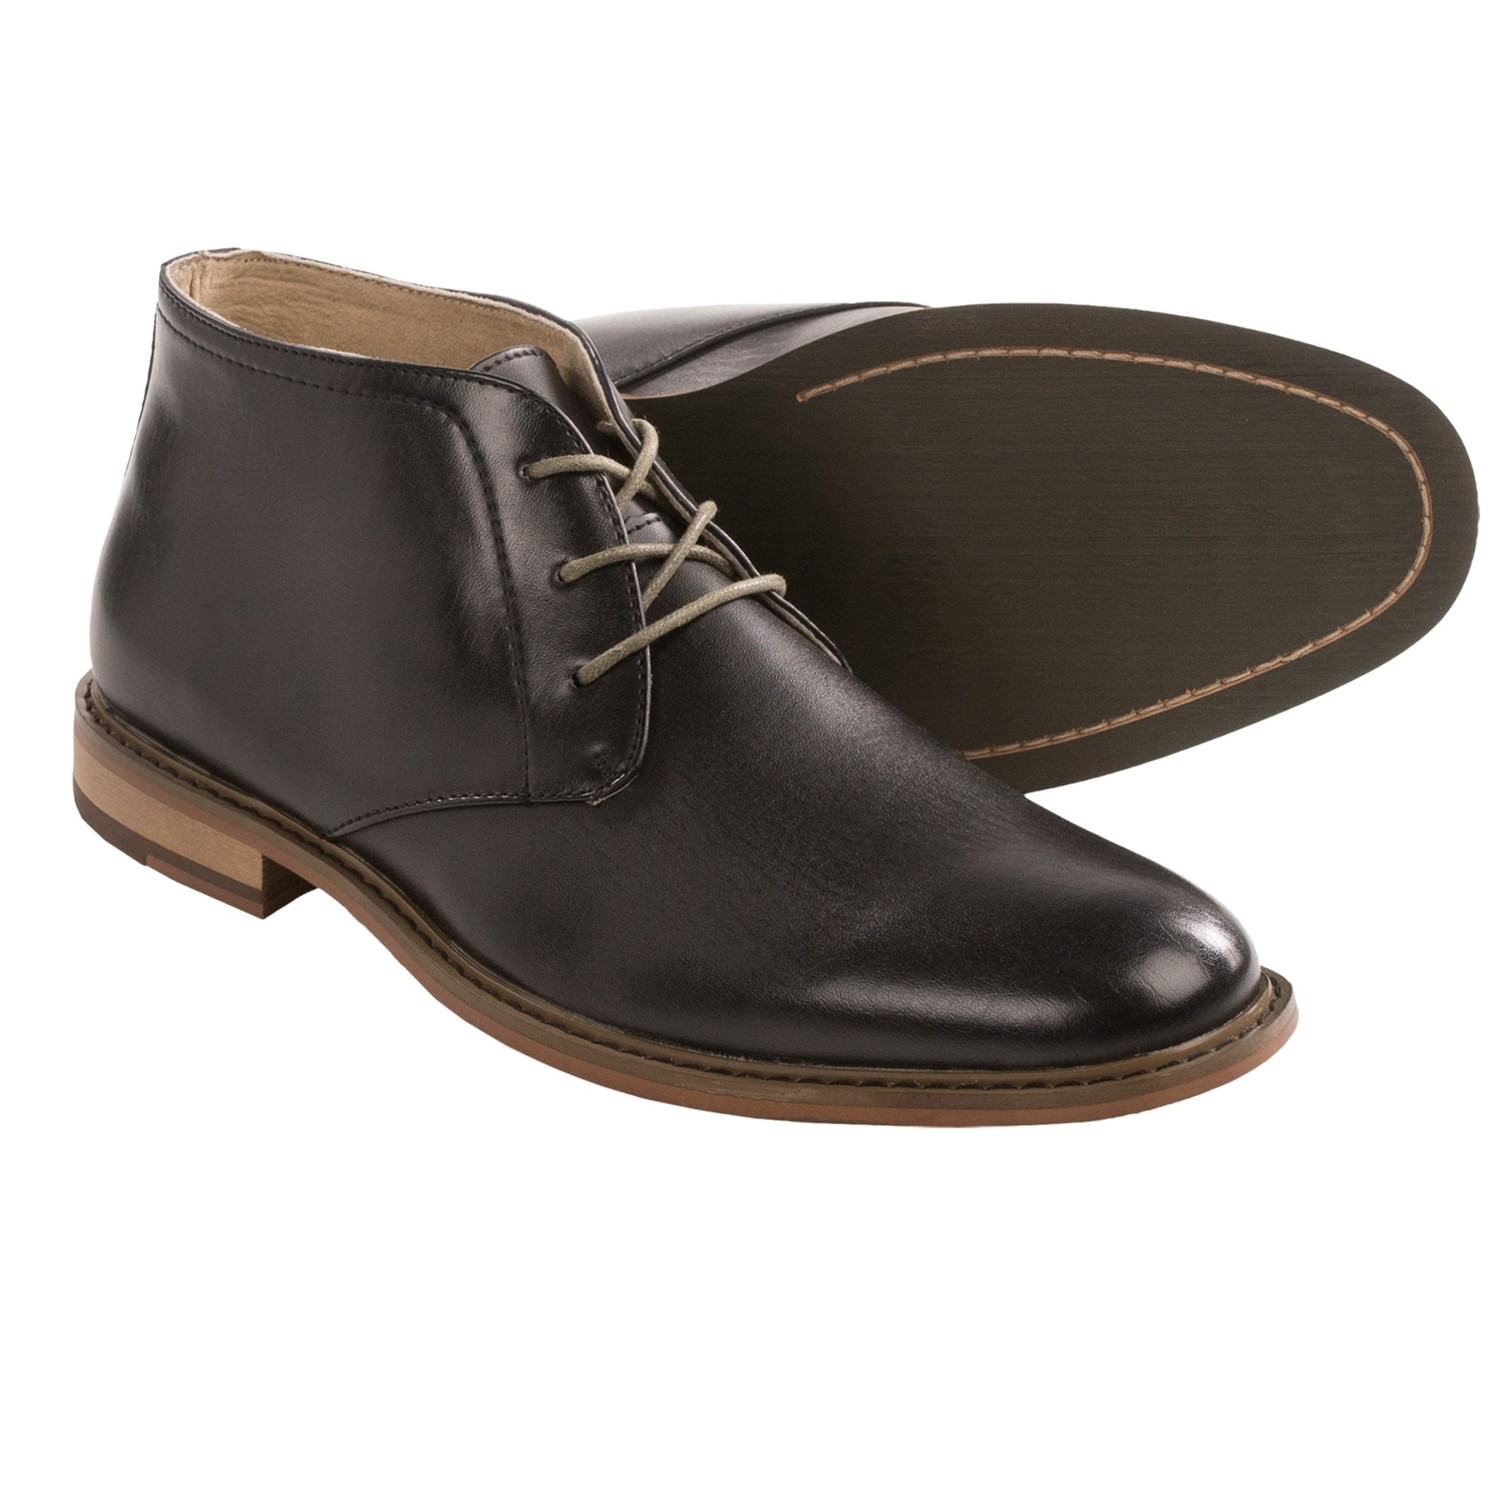 Deer Stags Seattle Chukka Boots (For Men) - Save 50%